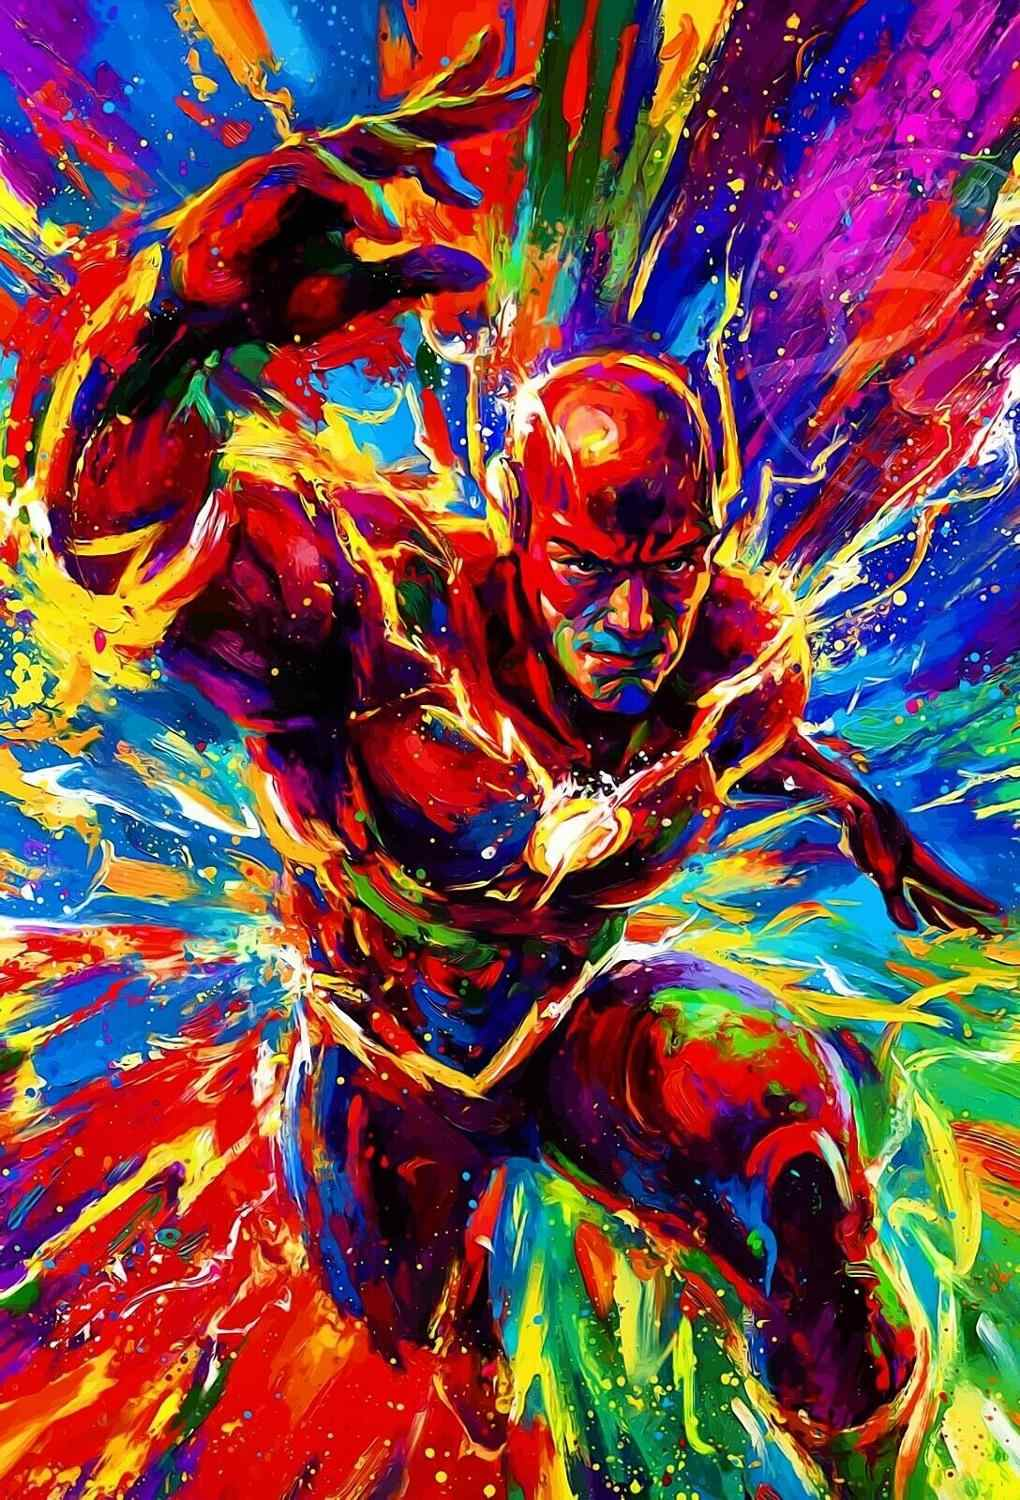 The Flash Poster Fan Art Justice League Dc Comics Oil Paintings Canvas Art Prints Wall Art For Living Room Bedroom Decor Painting Calligraphy Aliexpress